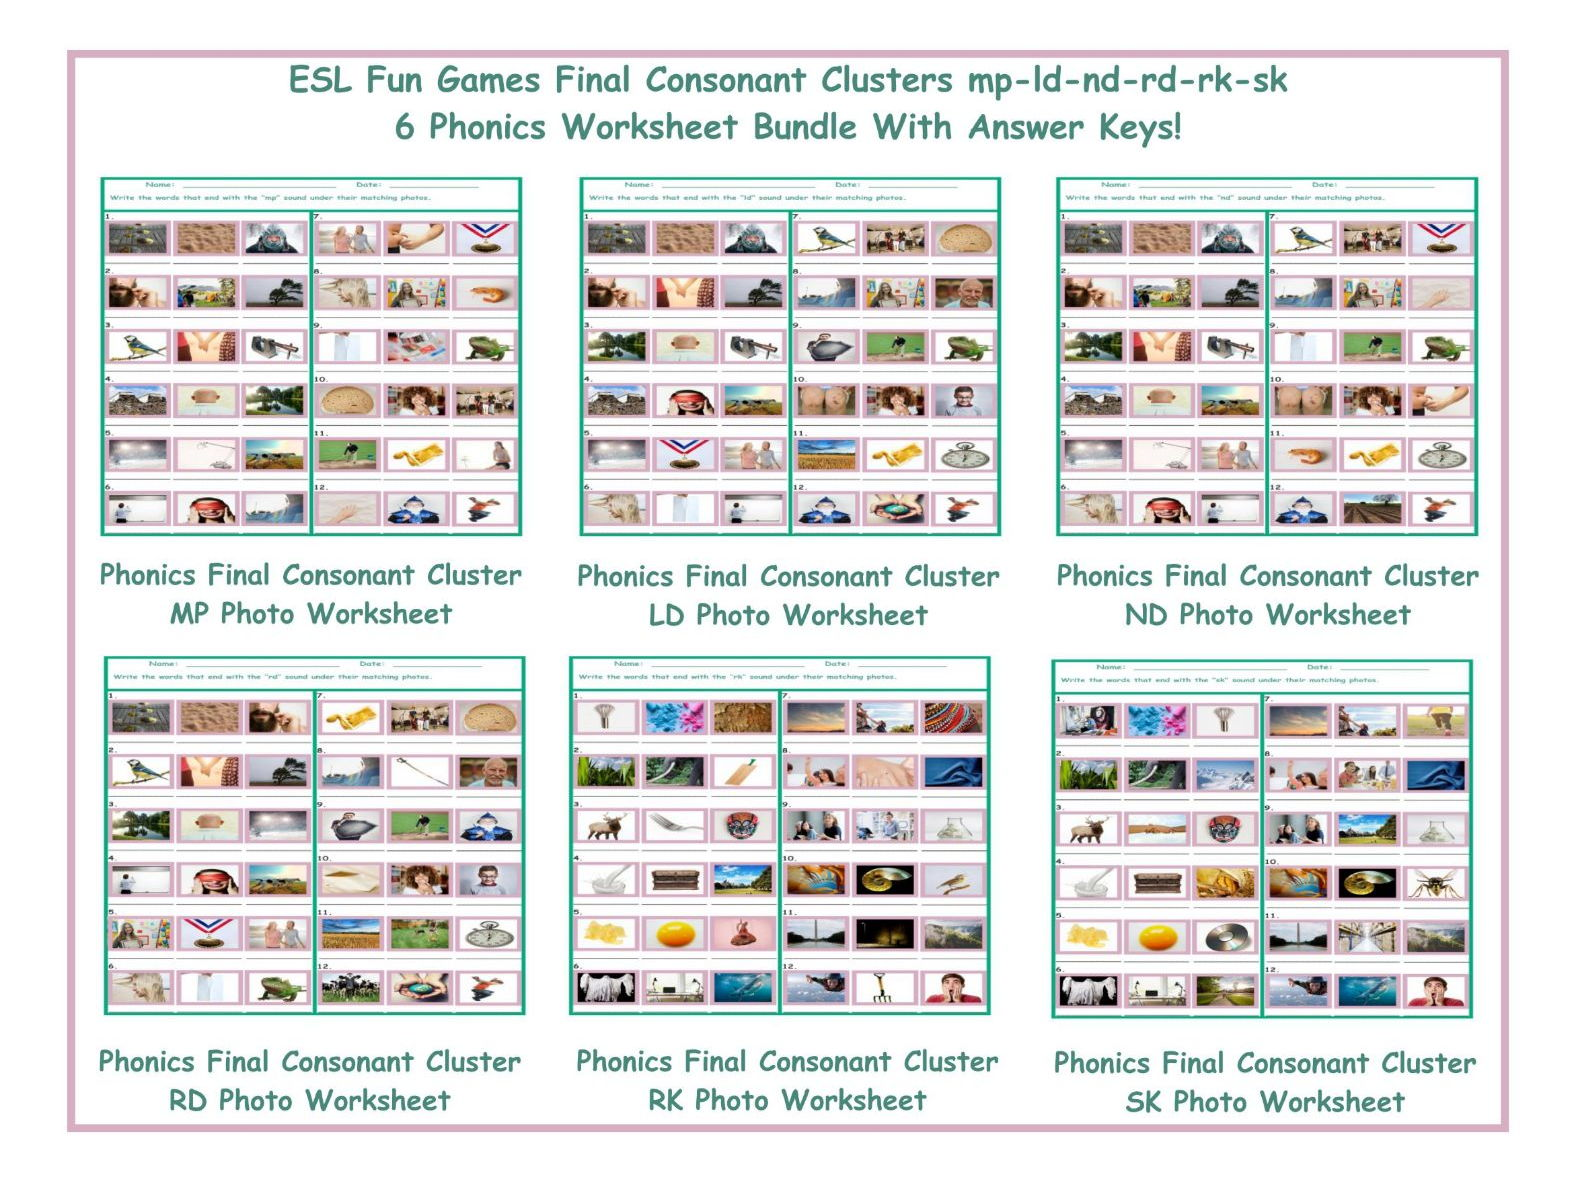 Worksheets Esl Phonics Worksheets final consonant clusters mp nd ld rd sk rk 6 worksheet bundle by eslfungames teaching resources tes